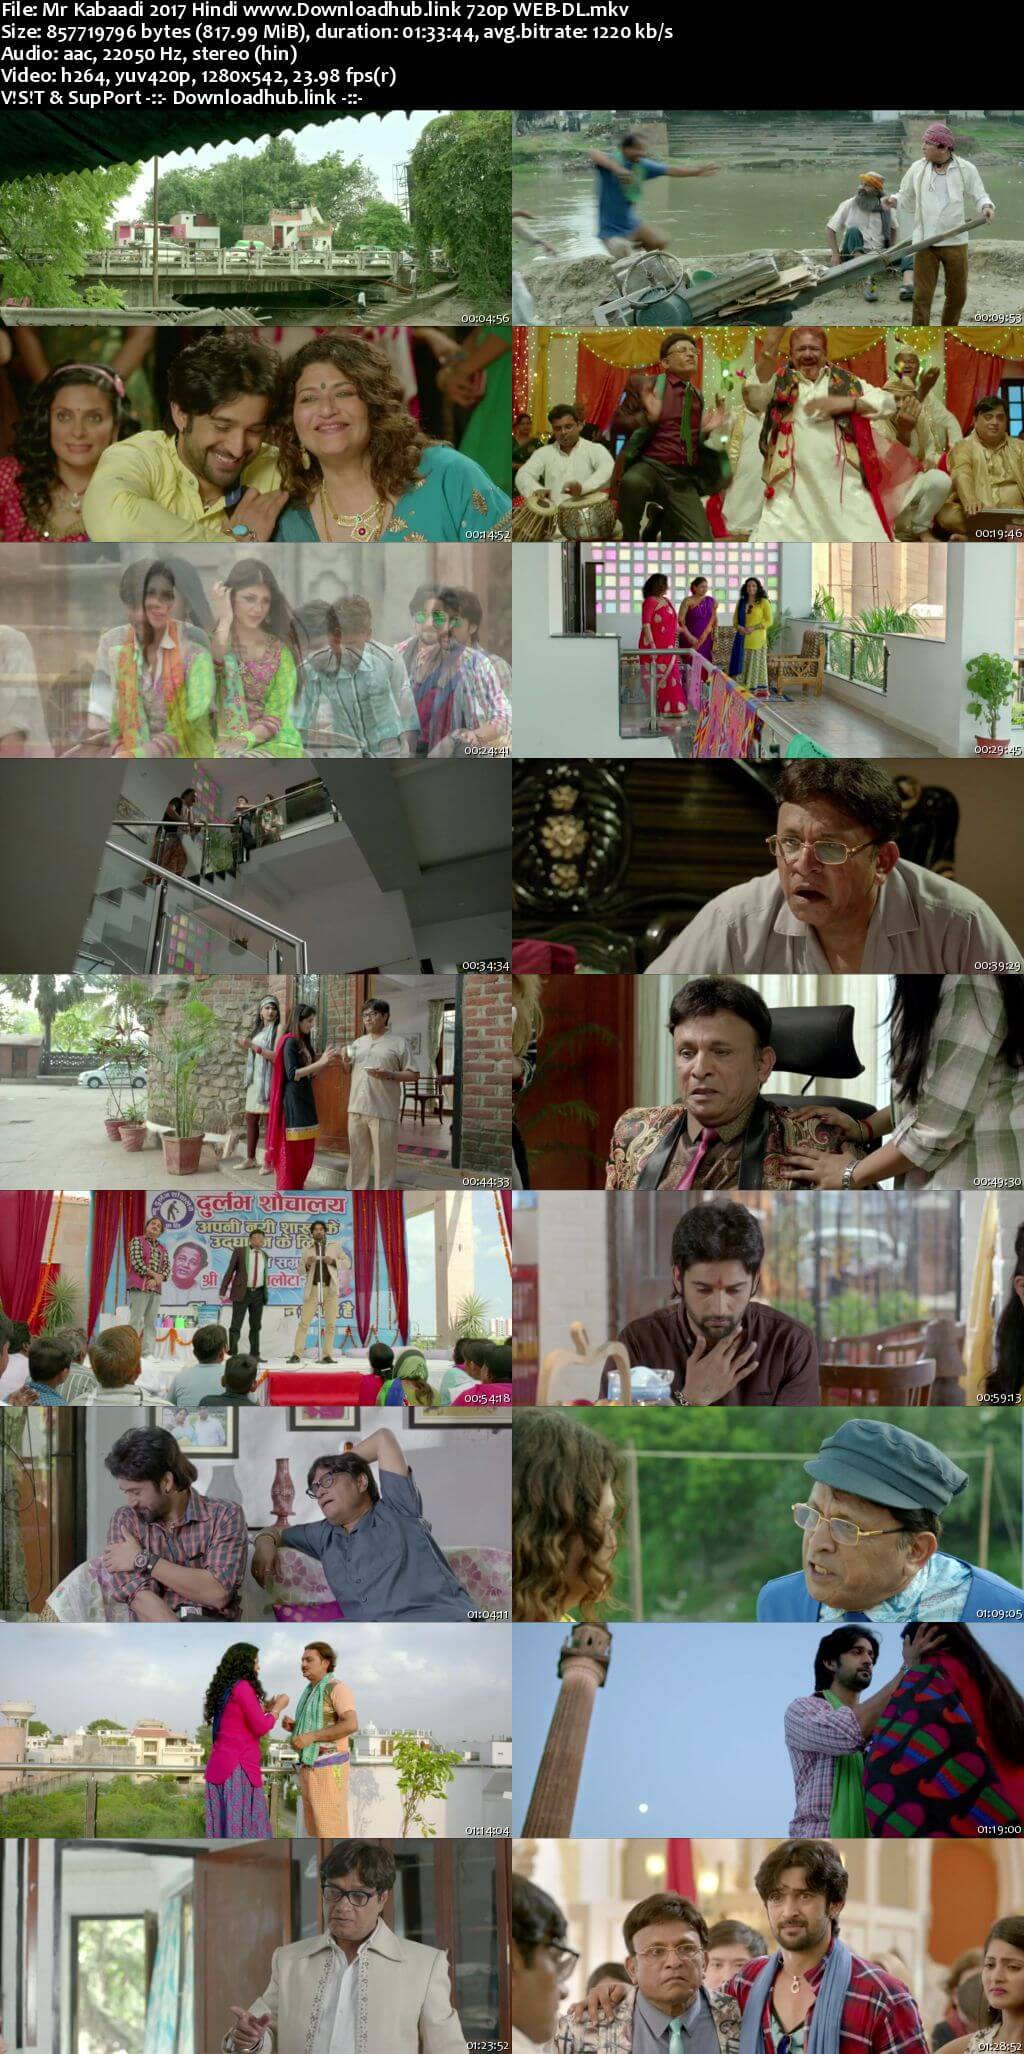 Mr Kabaadi 2017 Hindi 720p HDRip x264